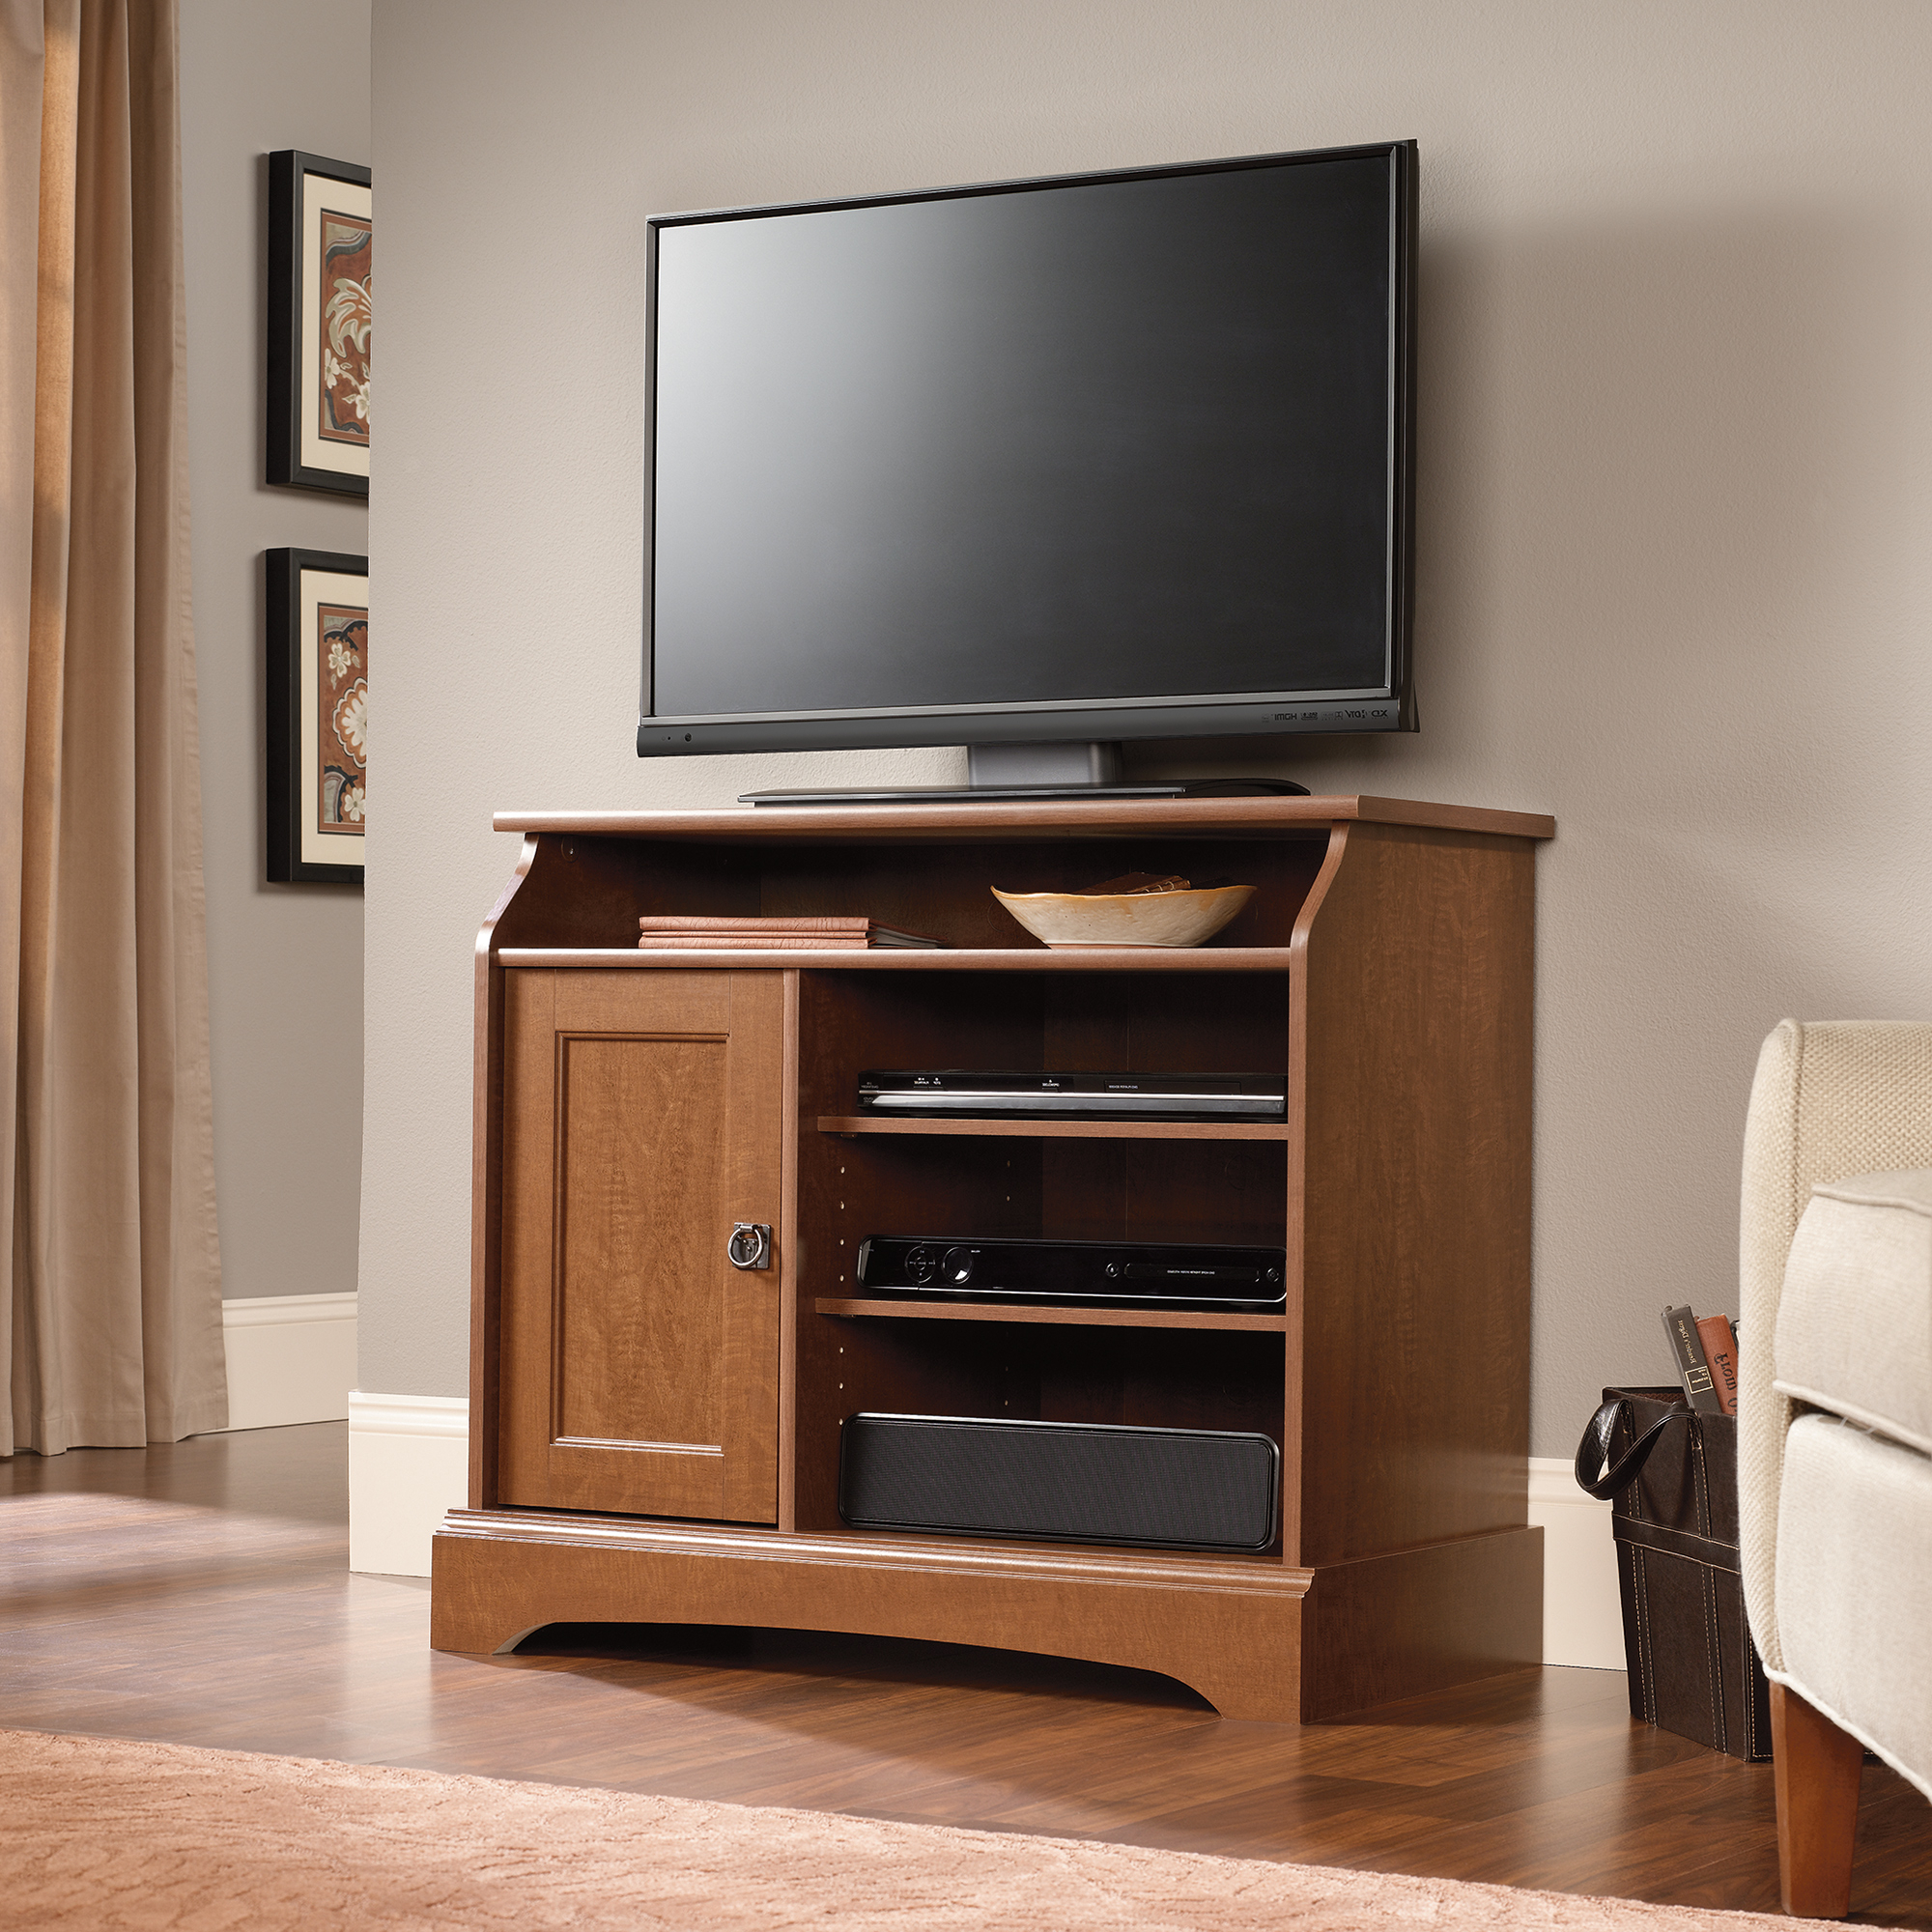 Fashionable Solid Maple Tv Stand Light Oak Honey With Media Storage Sauder With Regard To Maple Tv Stands For Flat Screens (Gallery 9 of 20)